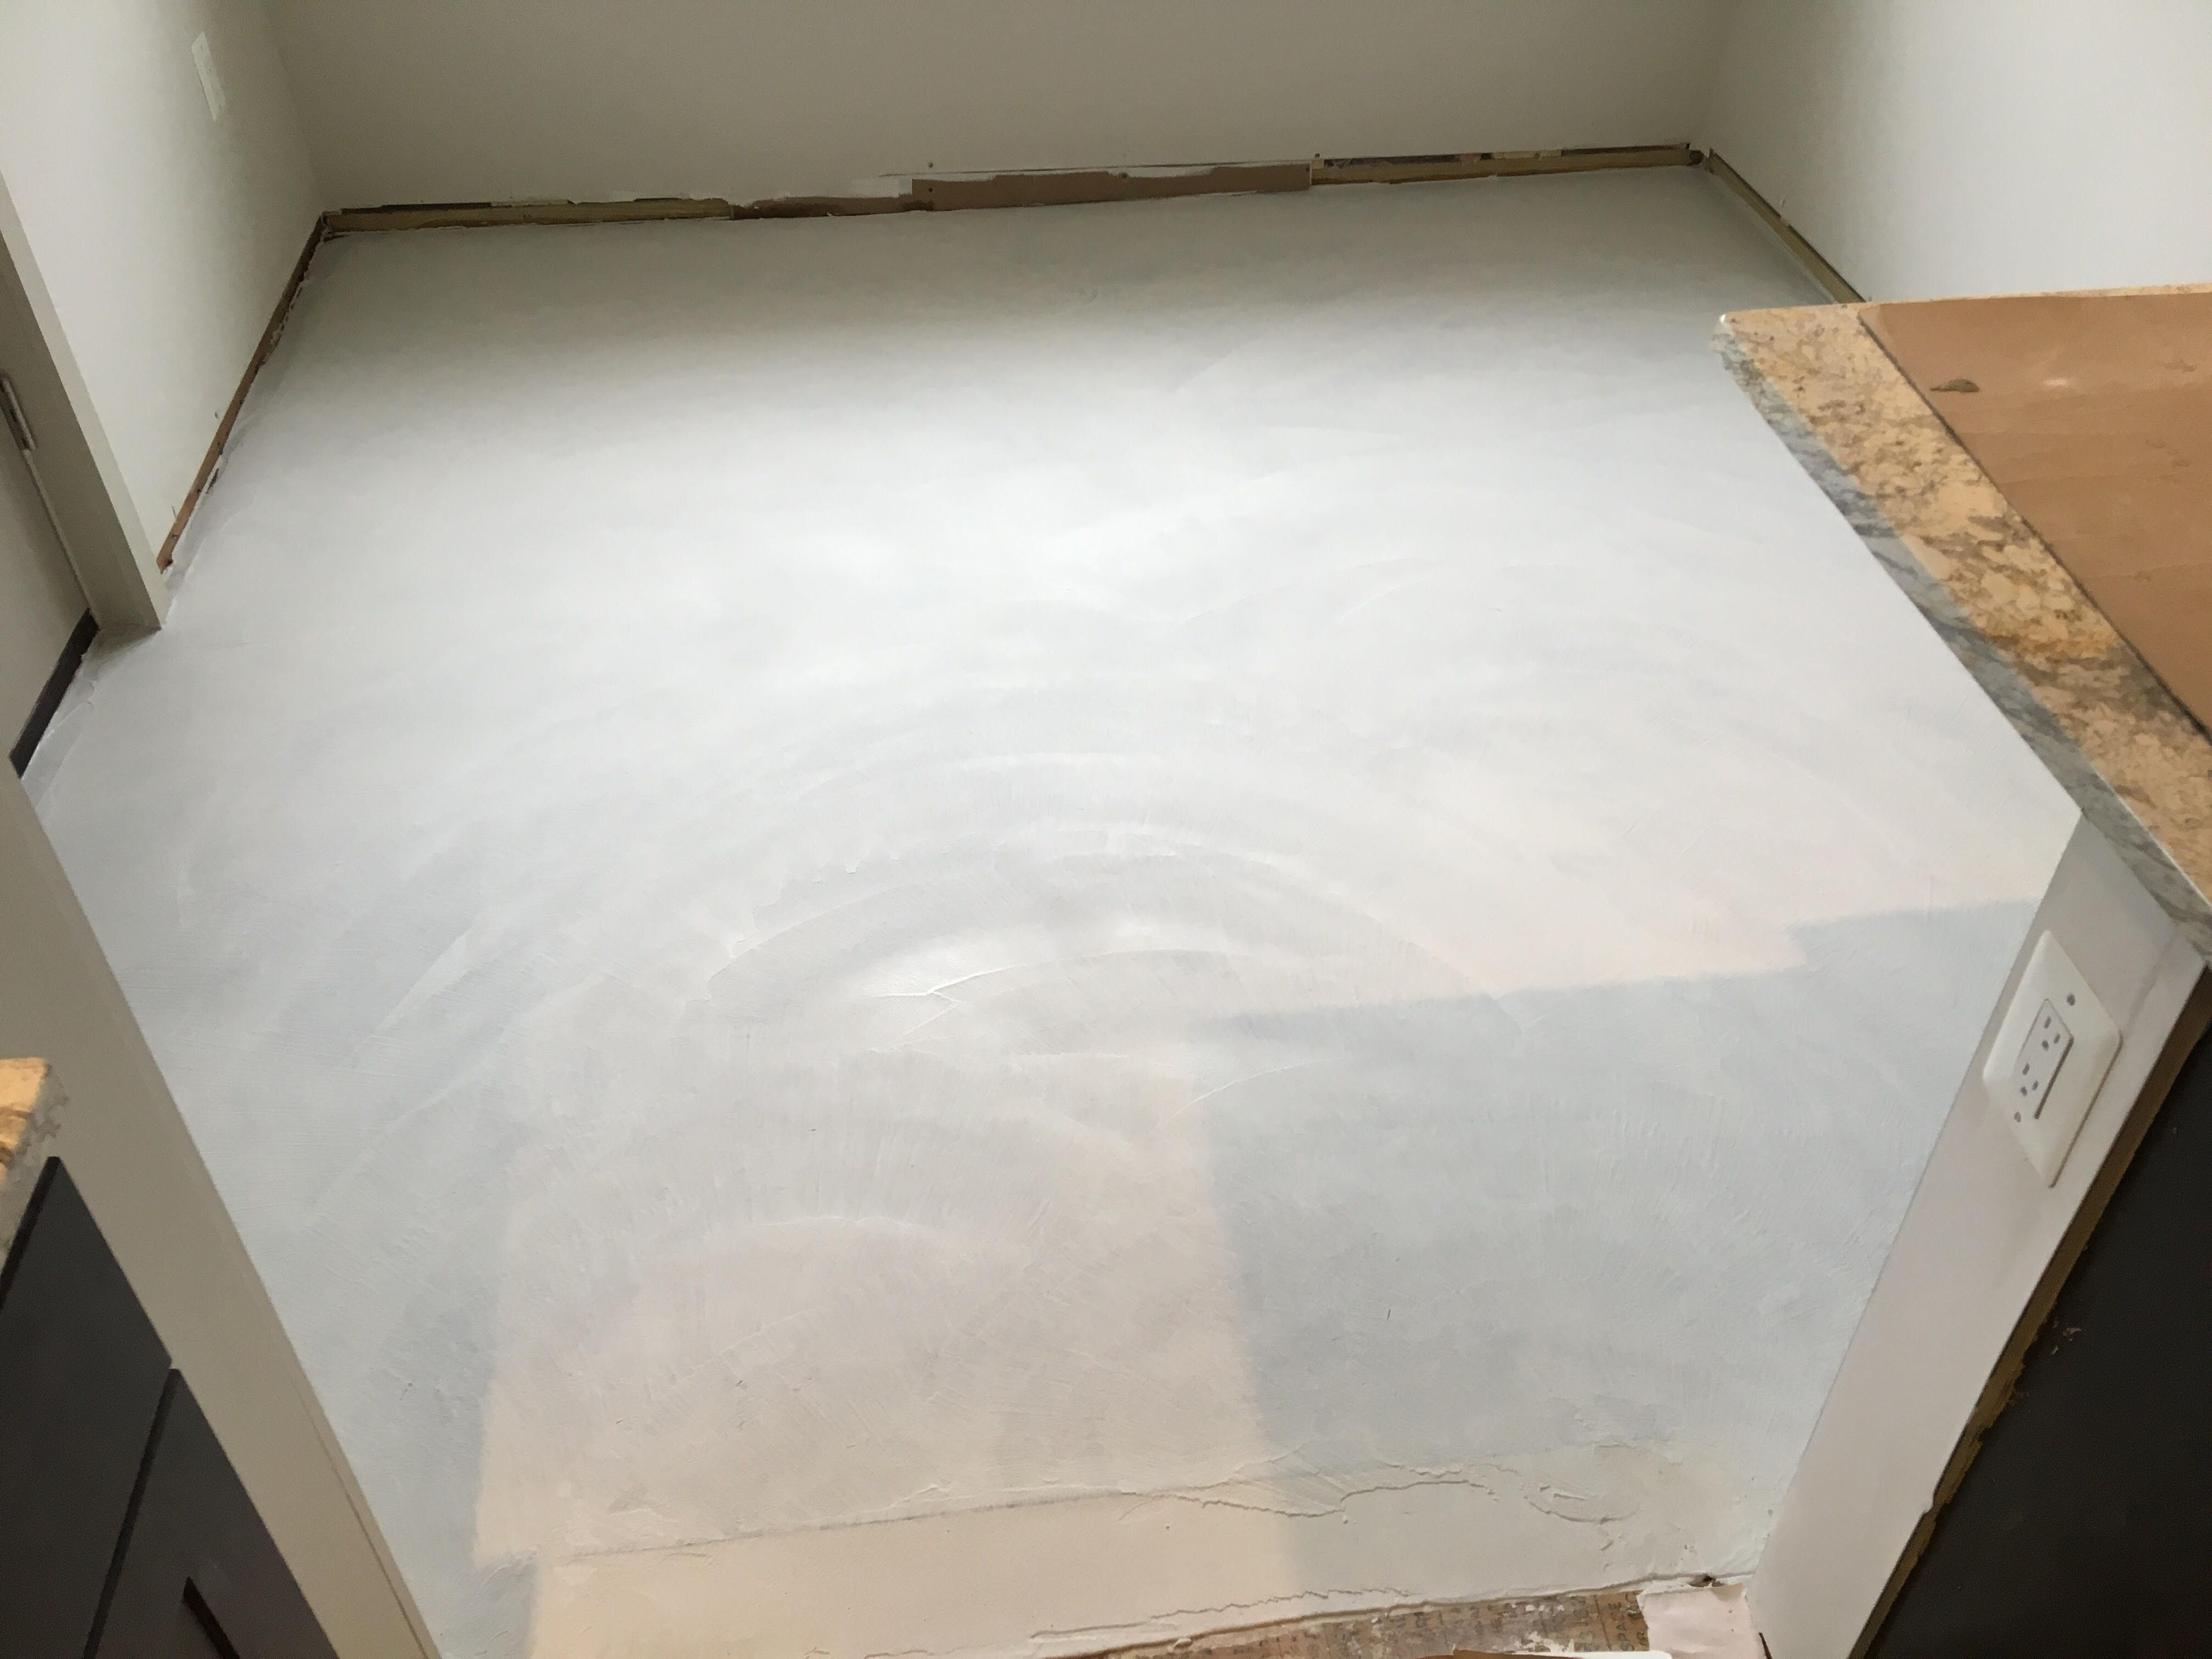 Most Commonly Trowel Down Overlays Are Used For Pool Decks Patios Steps Stairs Driveways Wa Concrete Decor Decorative Concrete Floors Concrete Floors